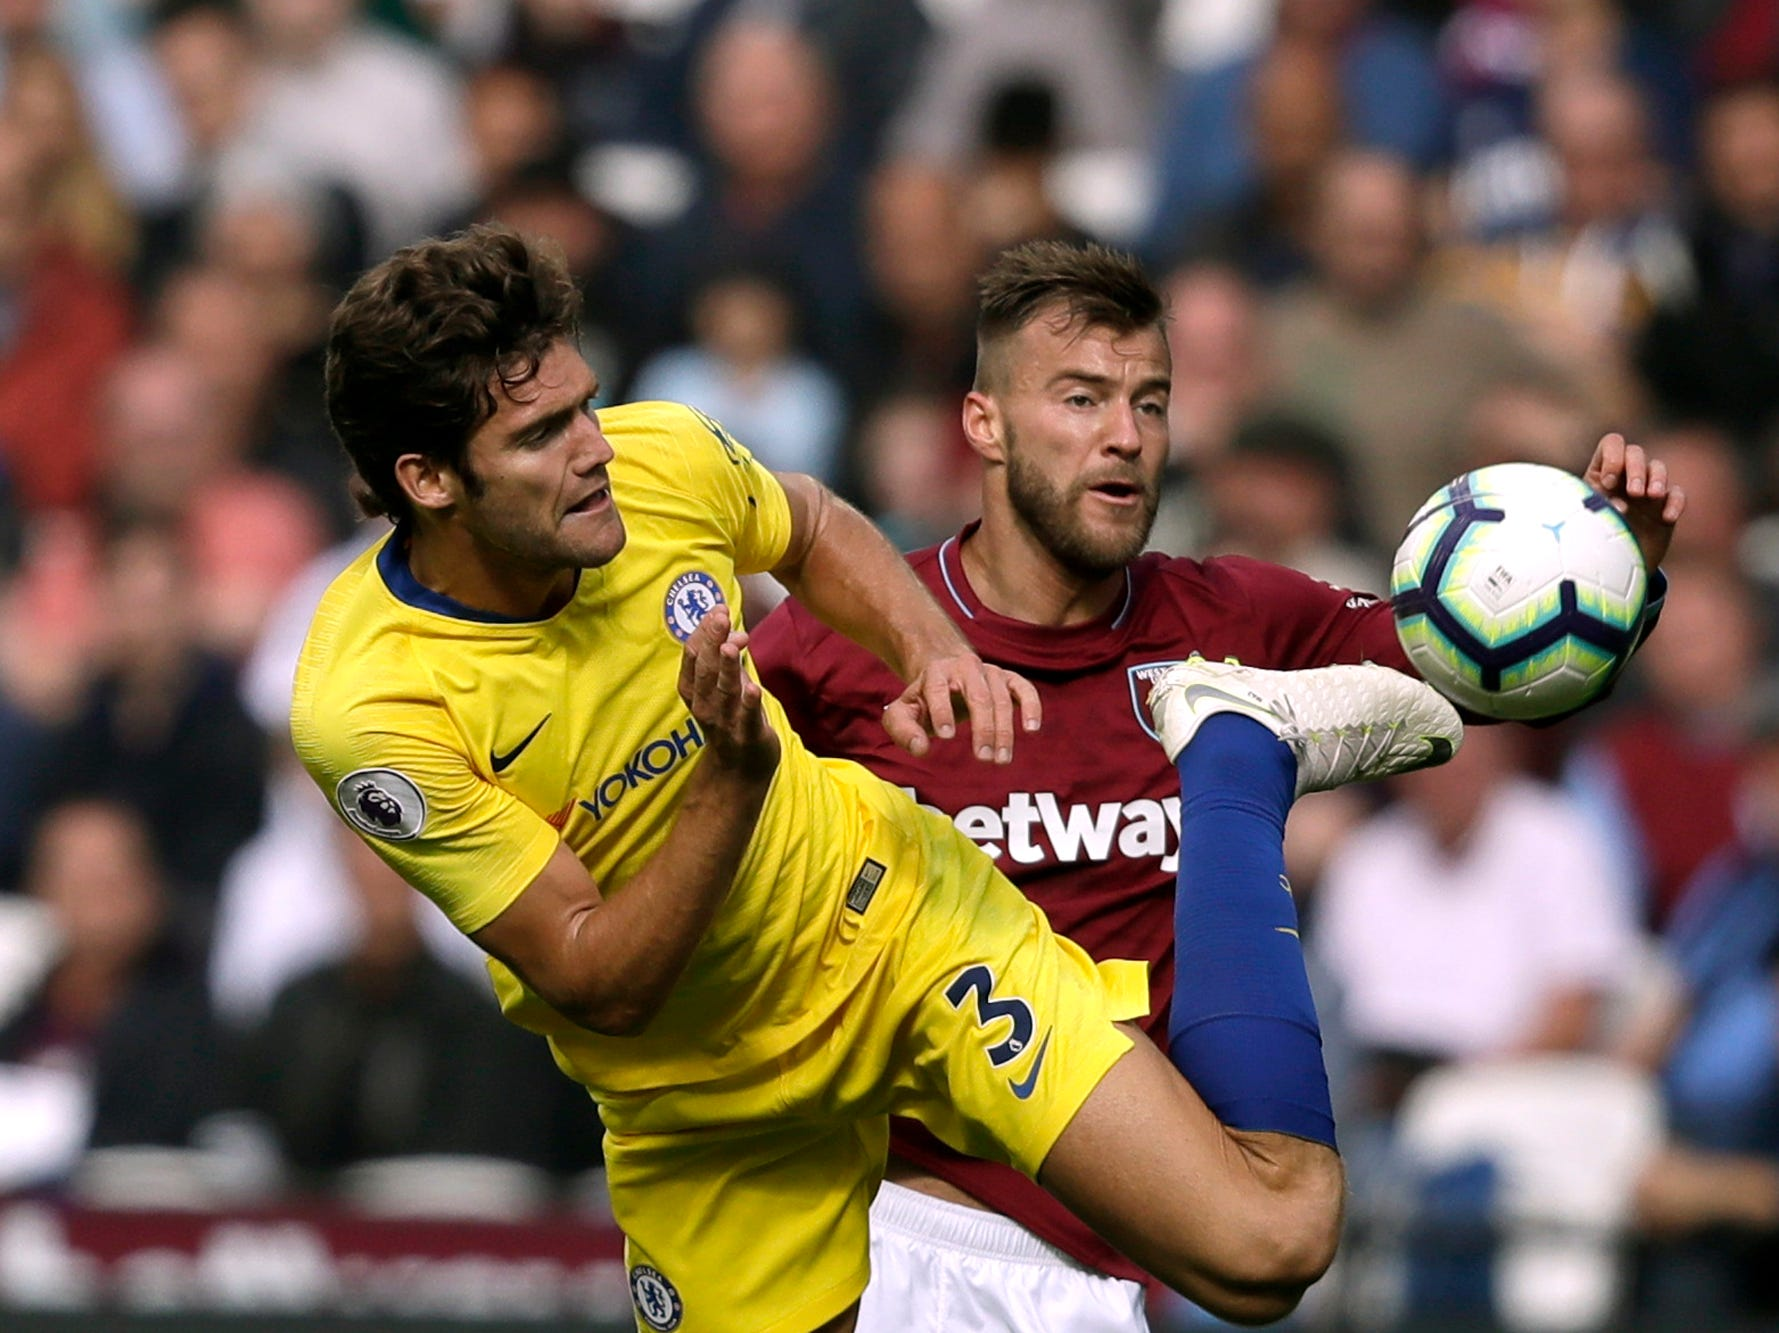 Chelsea's Marcos Alonso, left, vies for the ball with West Ham's Andriy Yarmolenko.